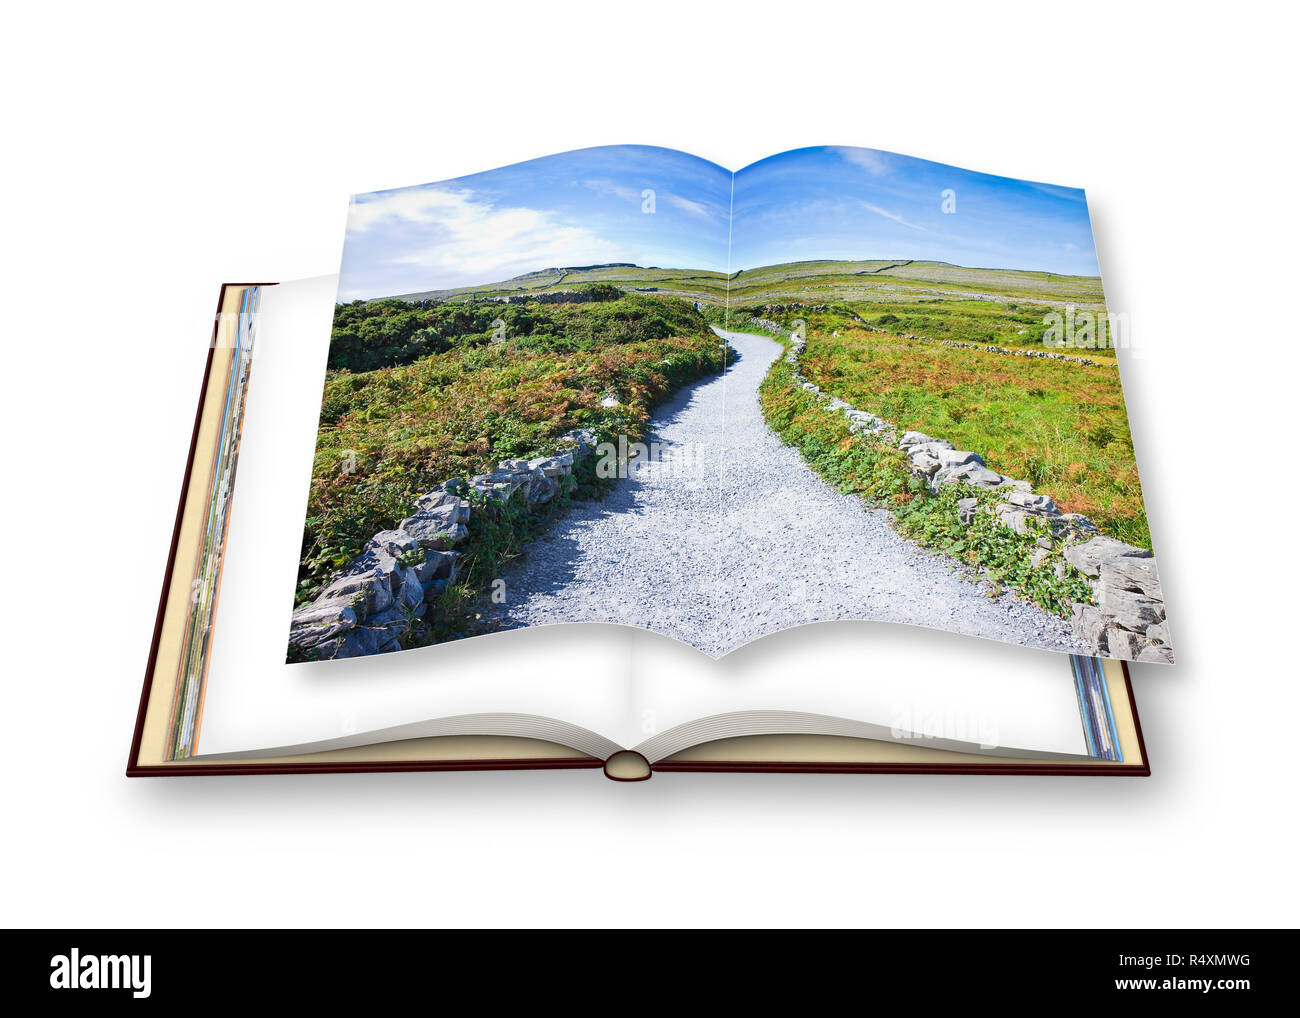 Photo album about a typical Irish flat landscape in Aran Island with country road, stone walls and fields of grass - Stock Image